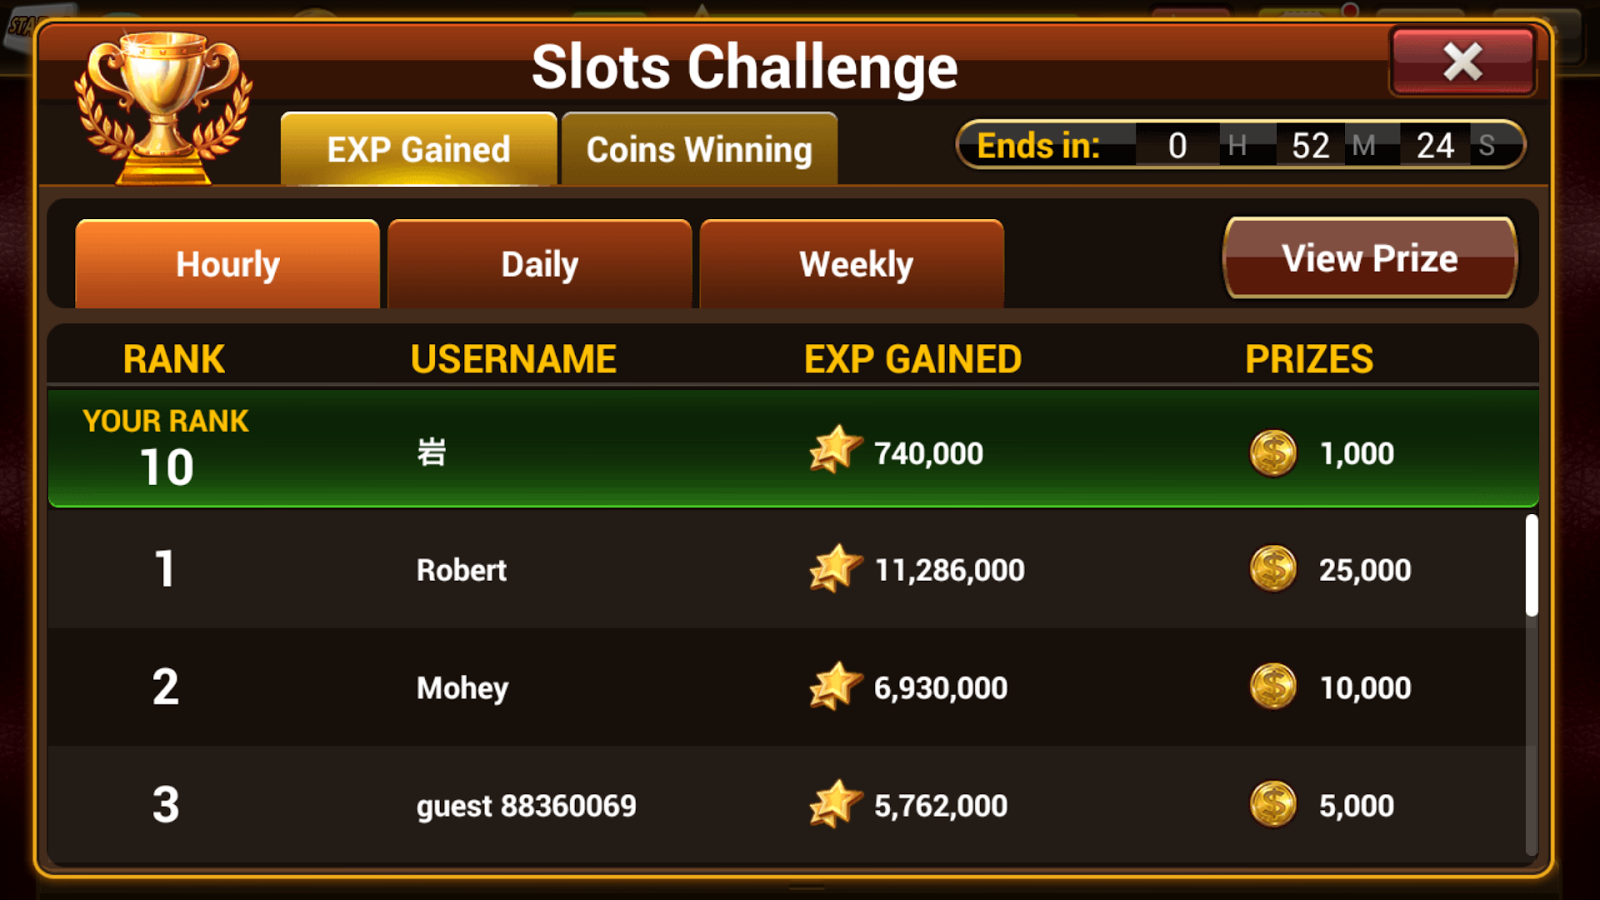 Slot Machines by IGG - Android Mobile Analytics and App Store Data